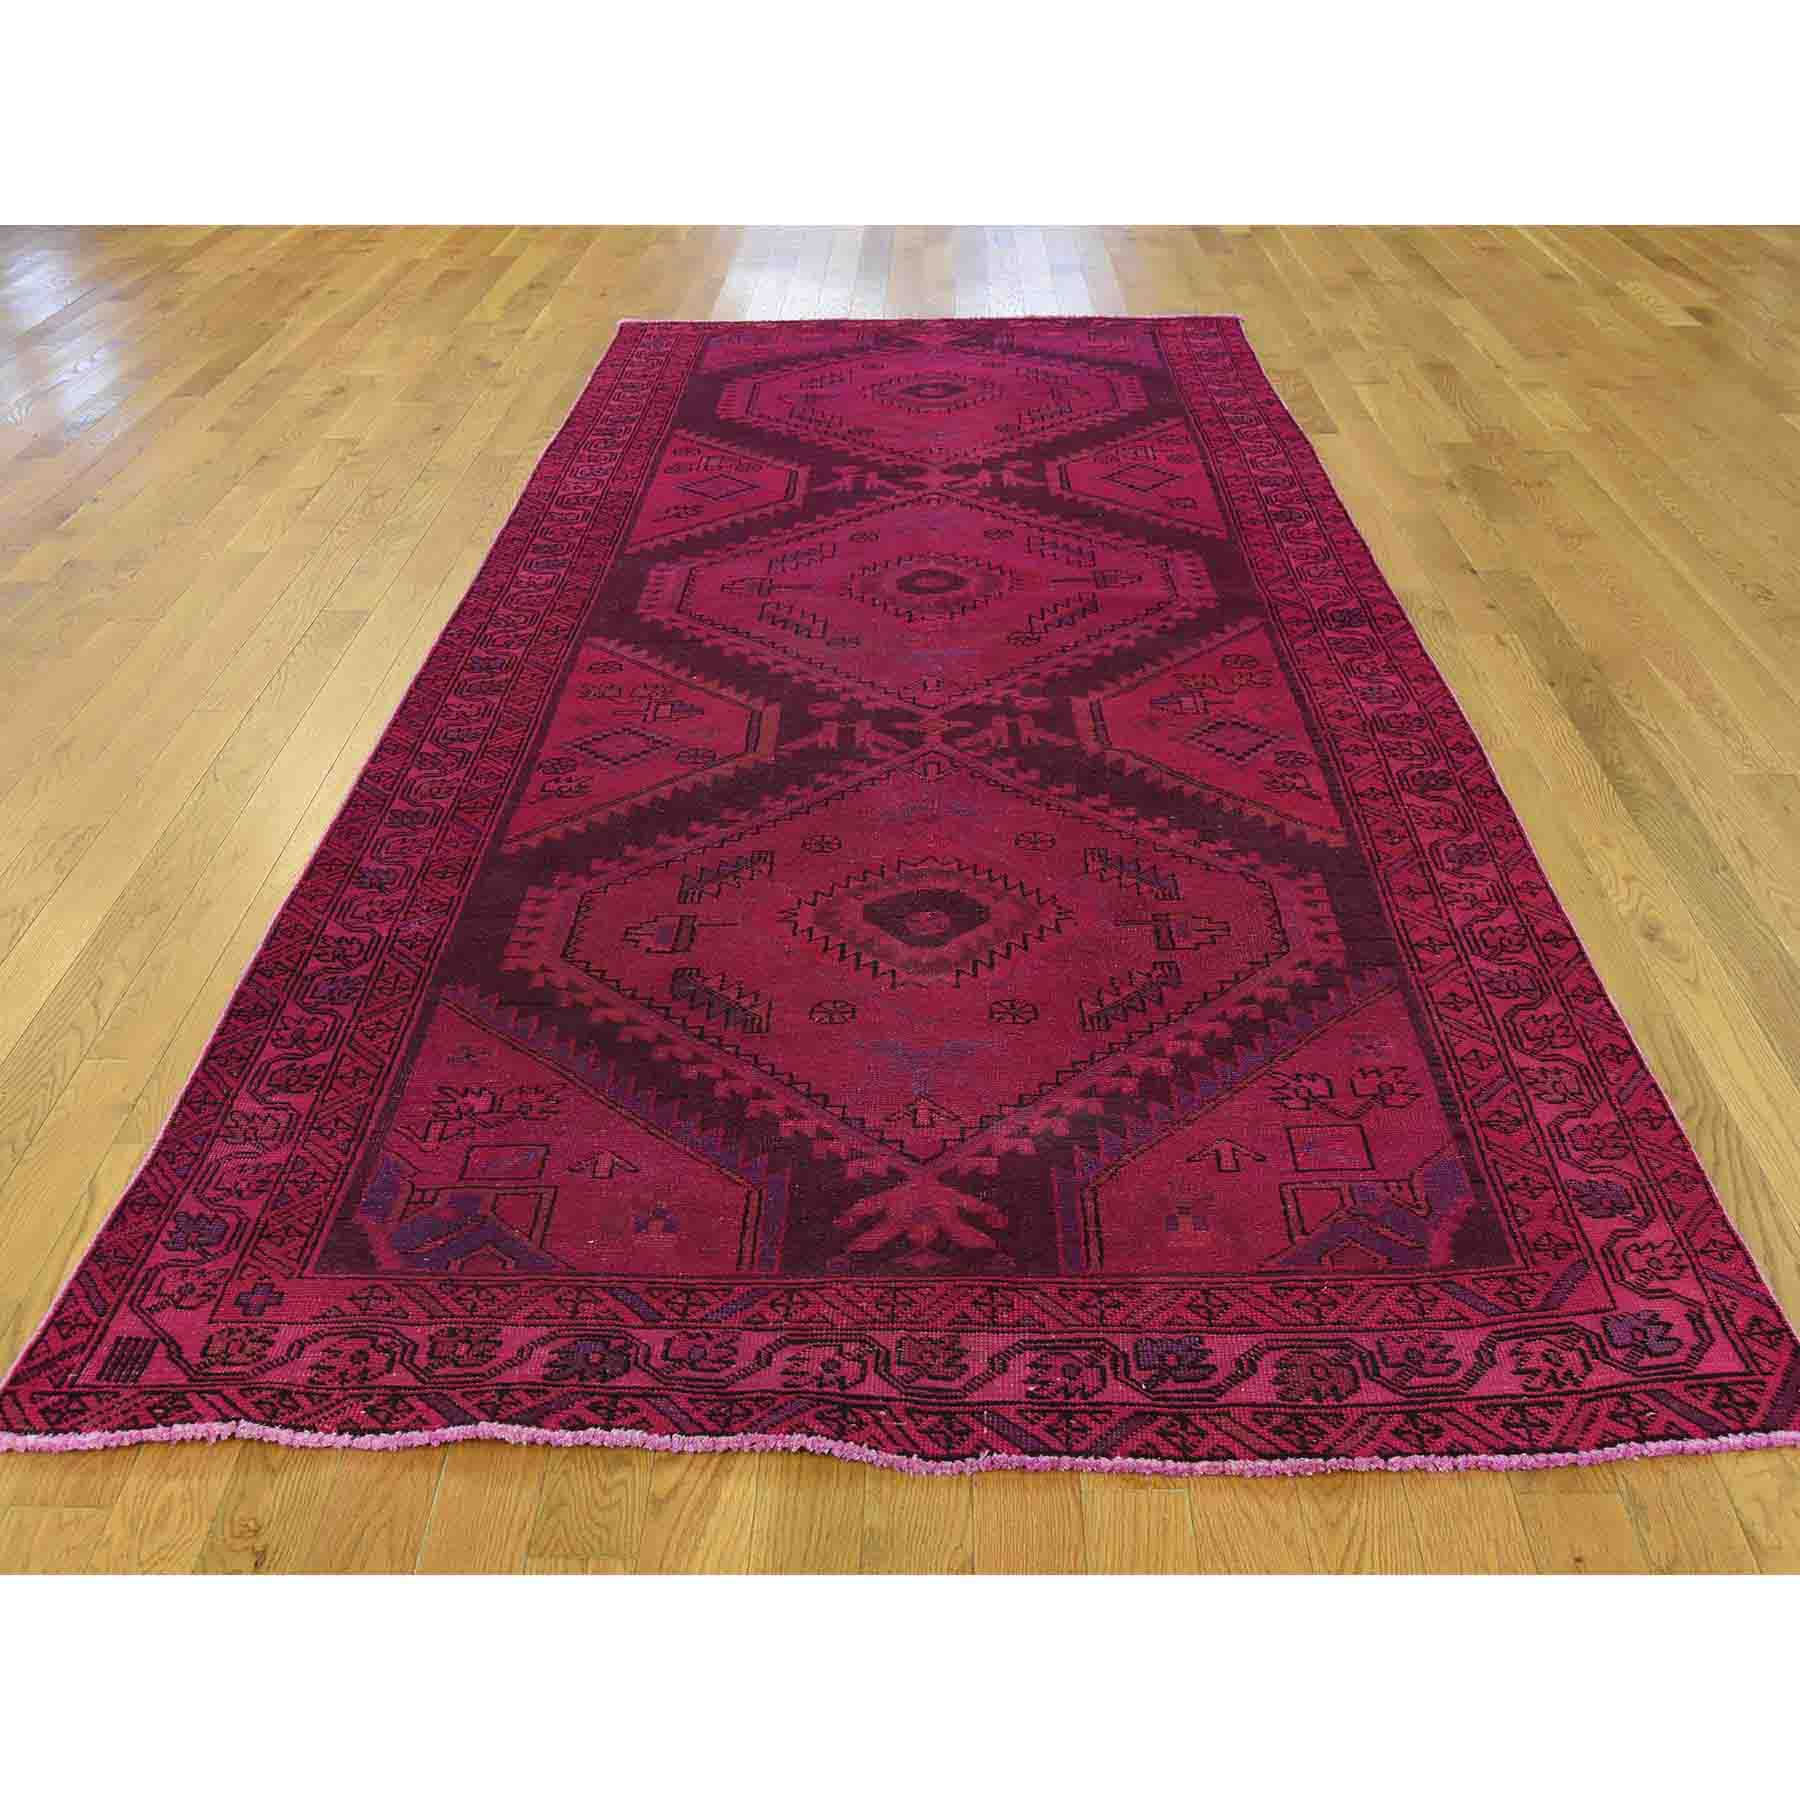 Overdyed-Vintage-Hand-Knotted-Rug-193020